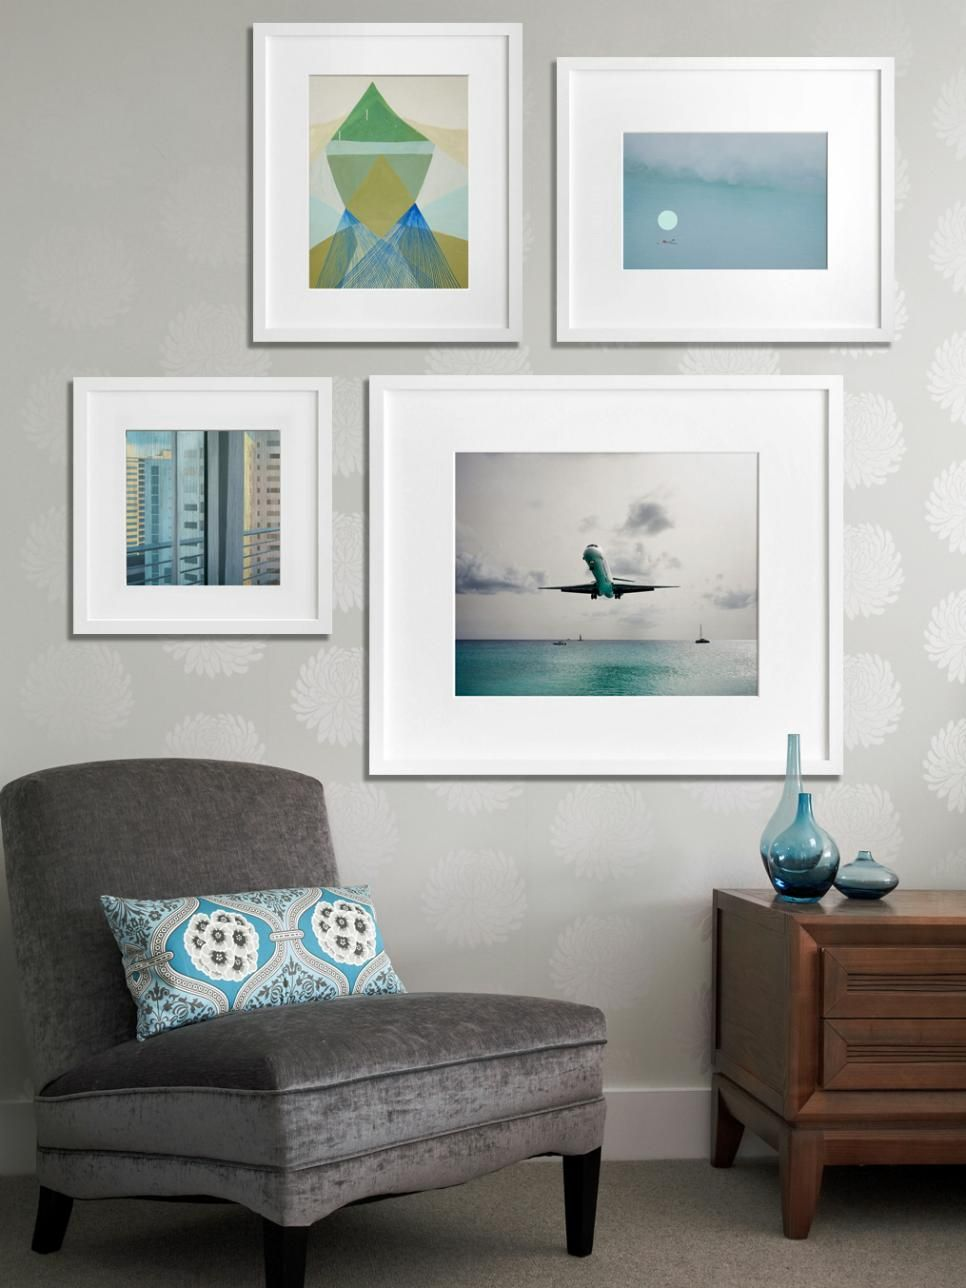 Jen Bekman Founder Of The Por Online Art 20x200 Finds That Creating A Gallery Wall Is Perfect Way To Make Personal Statement At Home